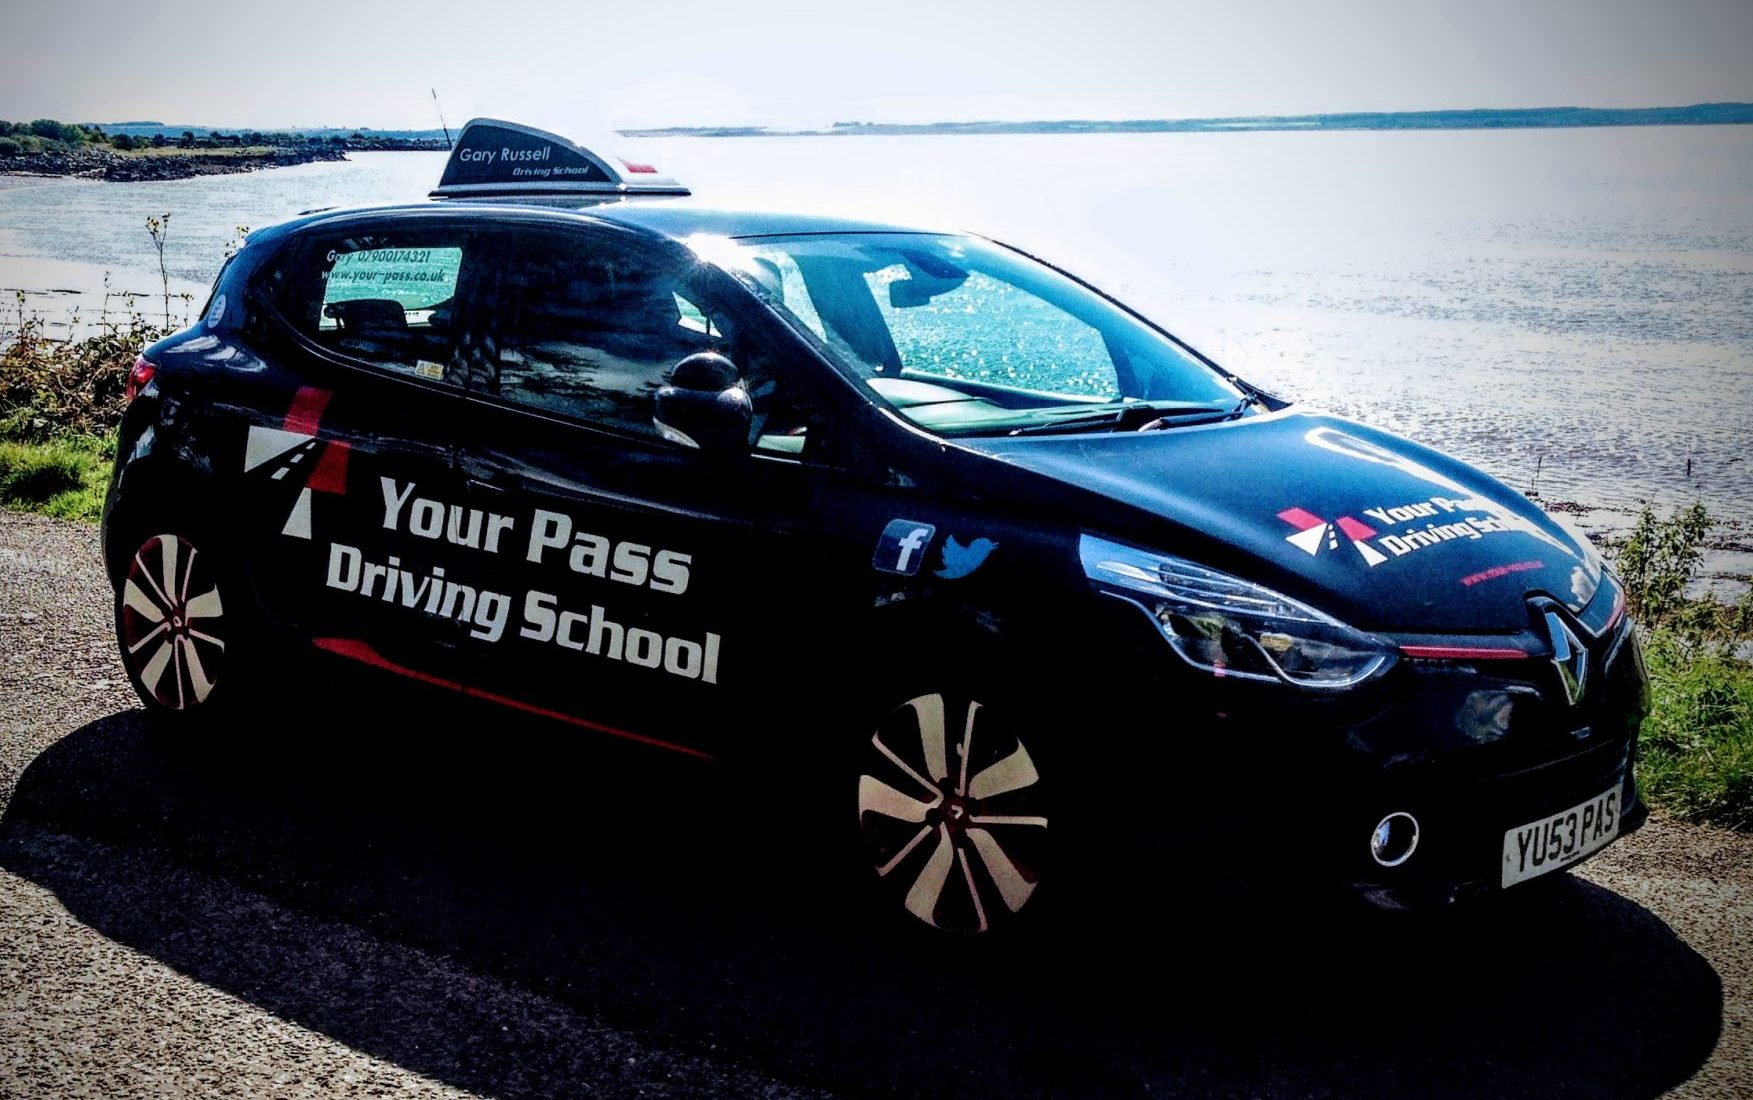 Why choose Your Pass Driving School?